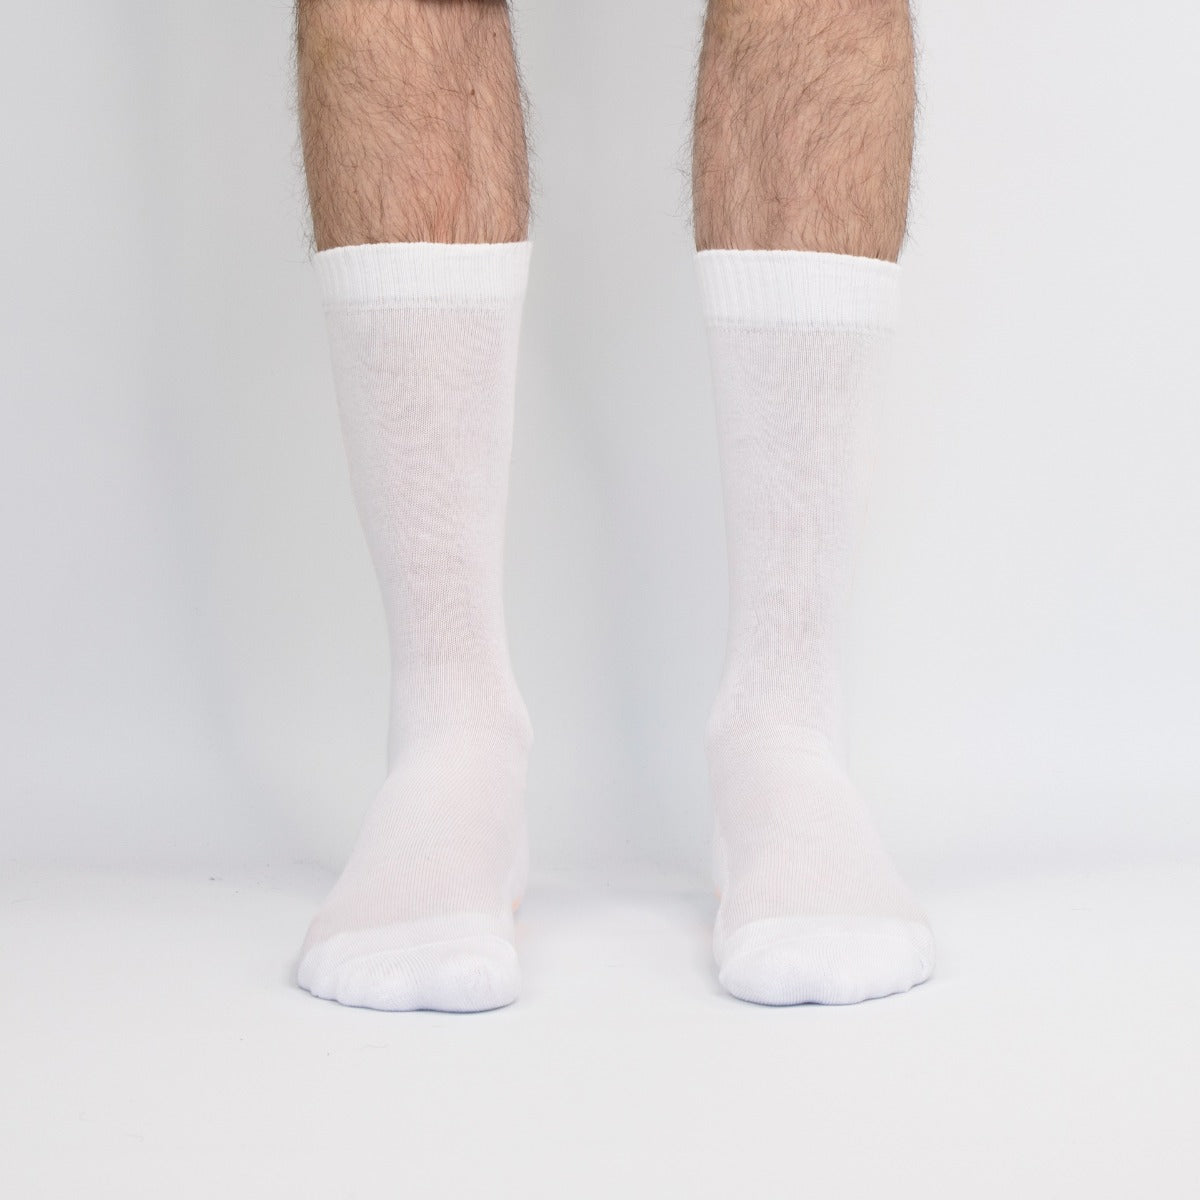 ACBC Socks Logo White Orange